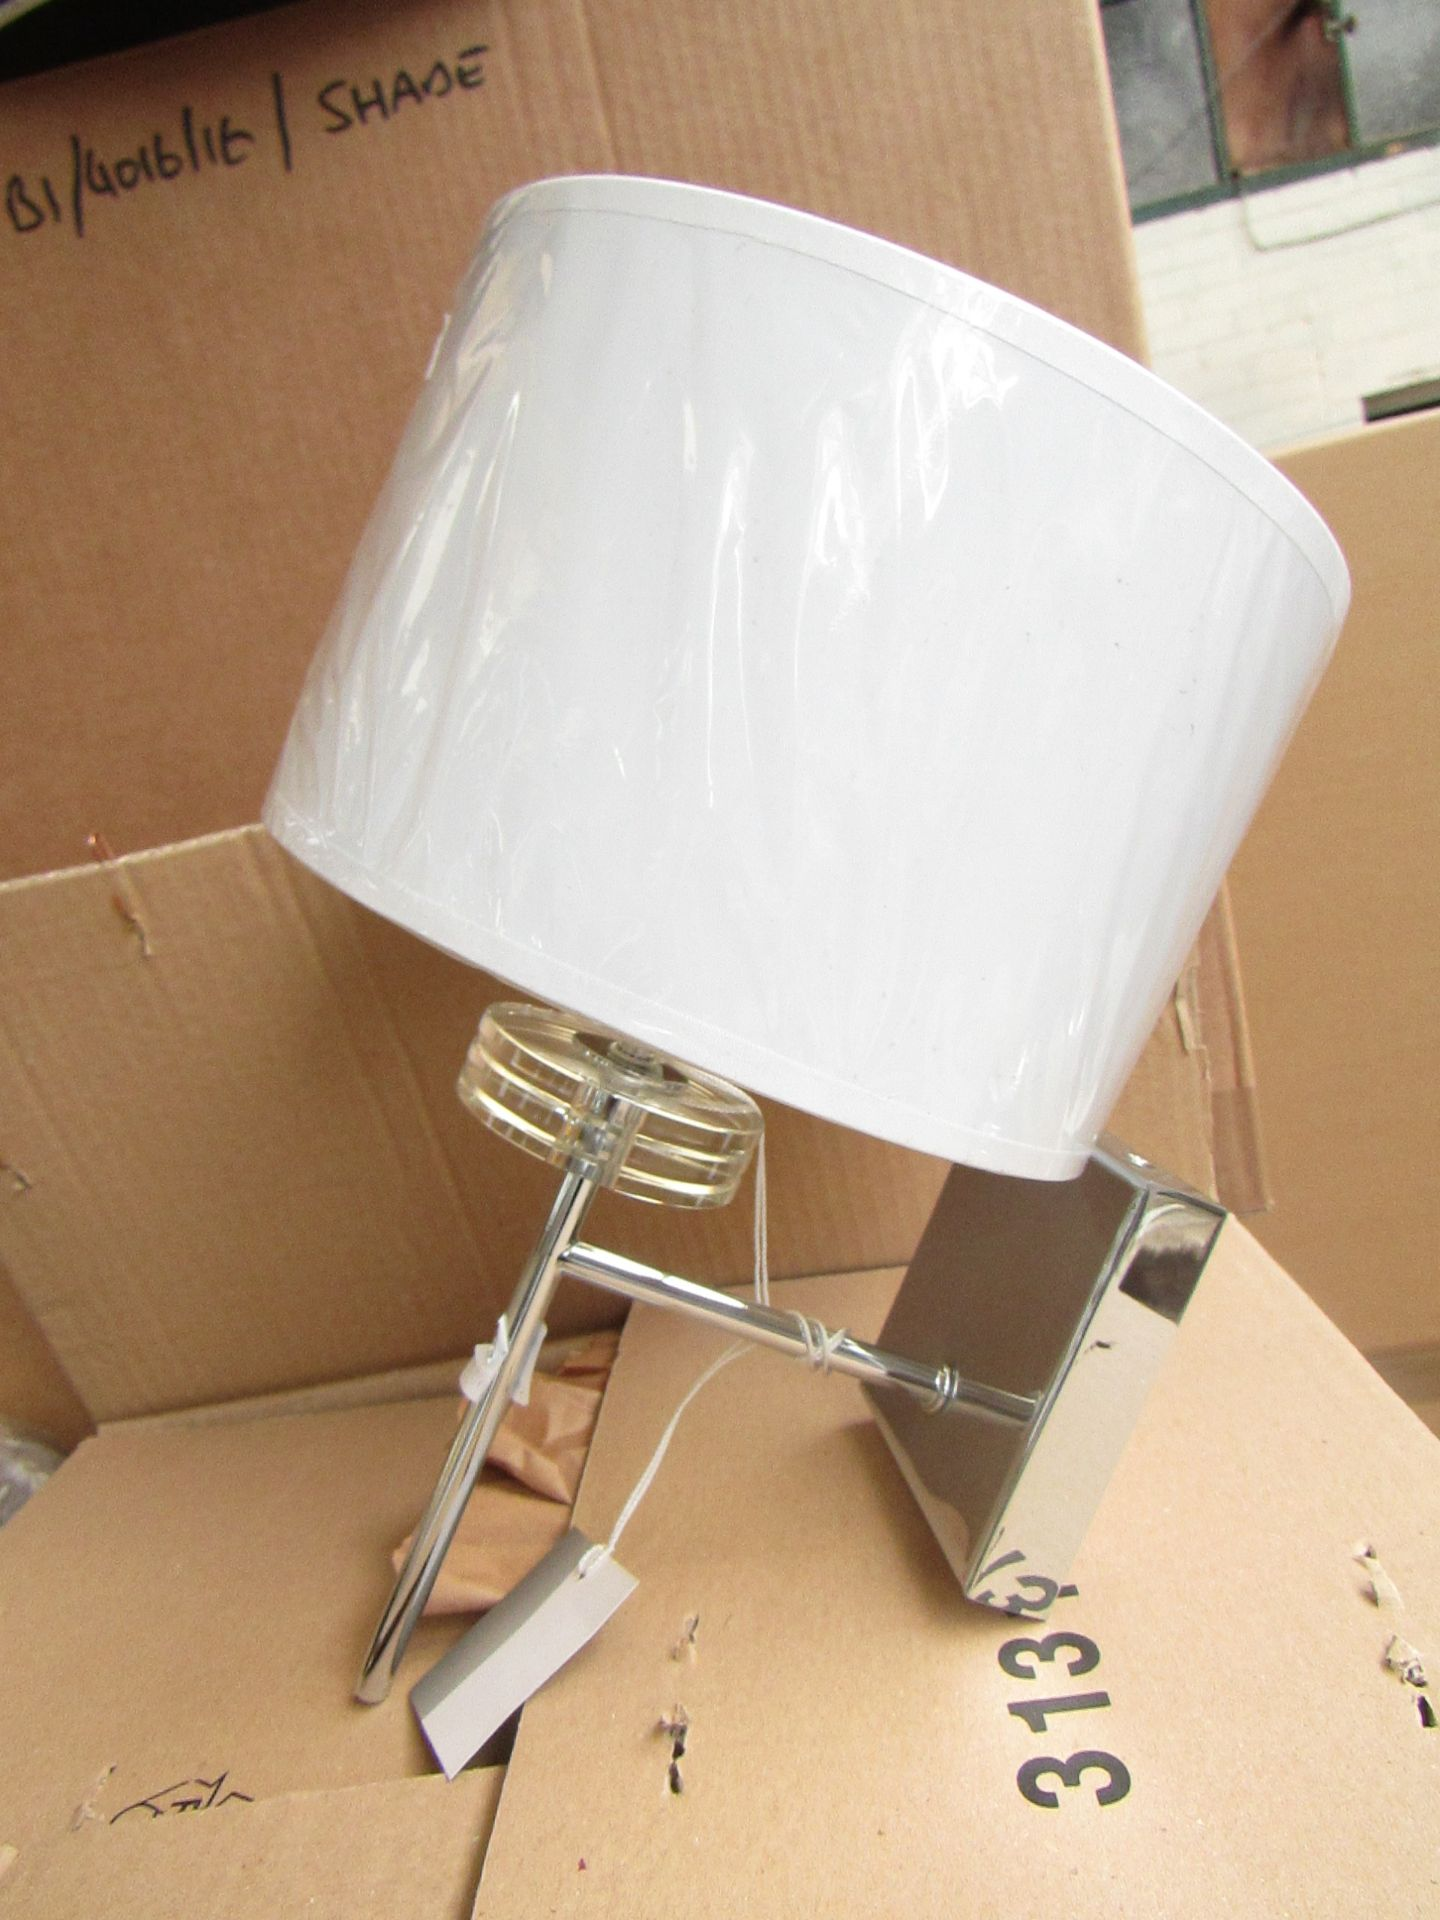 Lot 39 - Chelsom Chrome wall light with shade